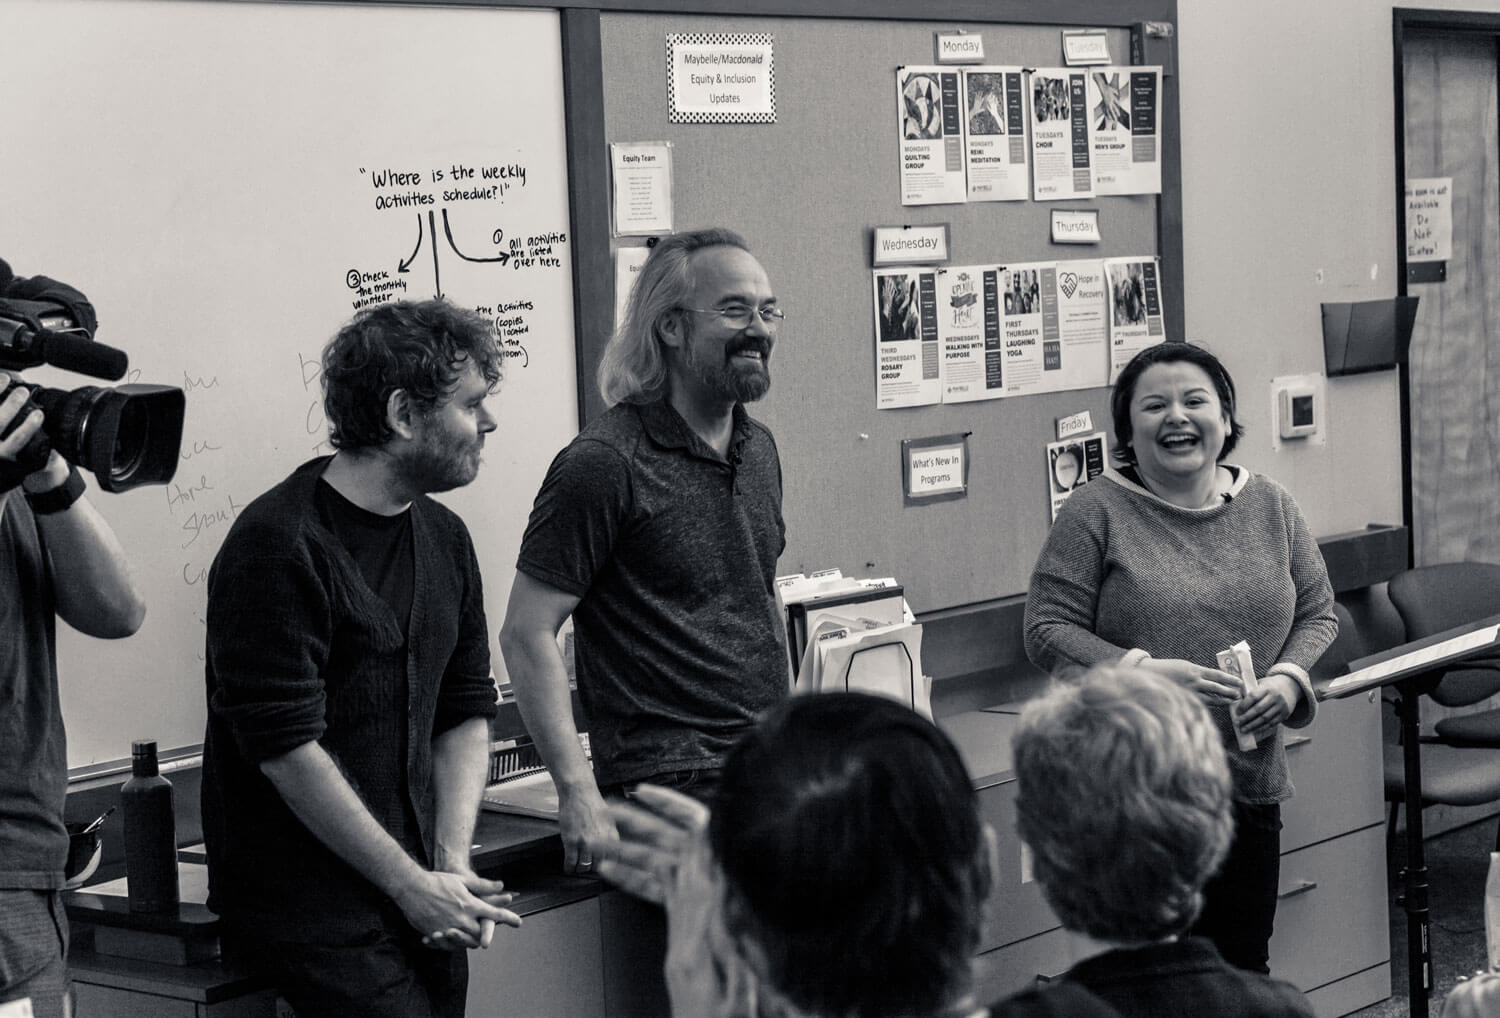 Carlos Kalmar and Gabriel Kahane discuss emergency shelter intake form with the choir